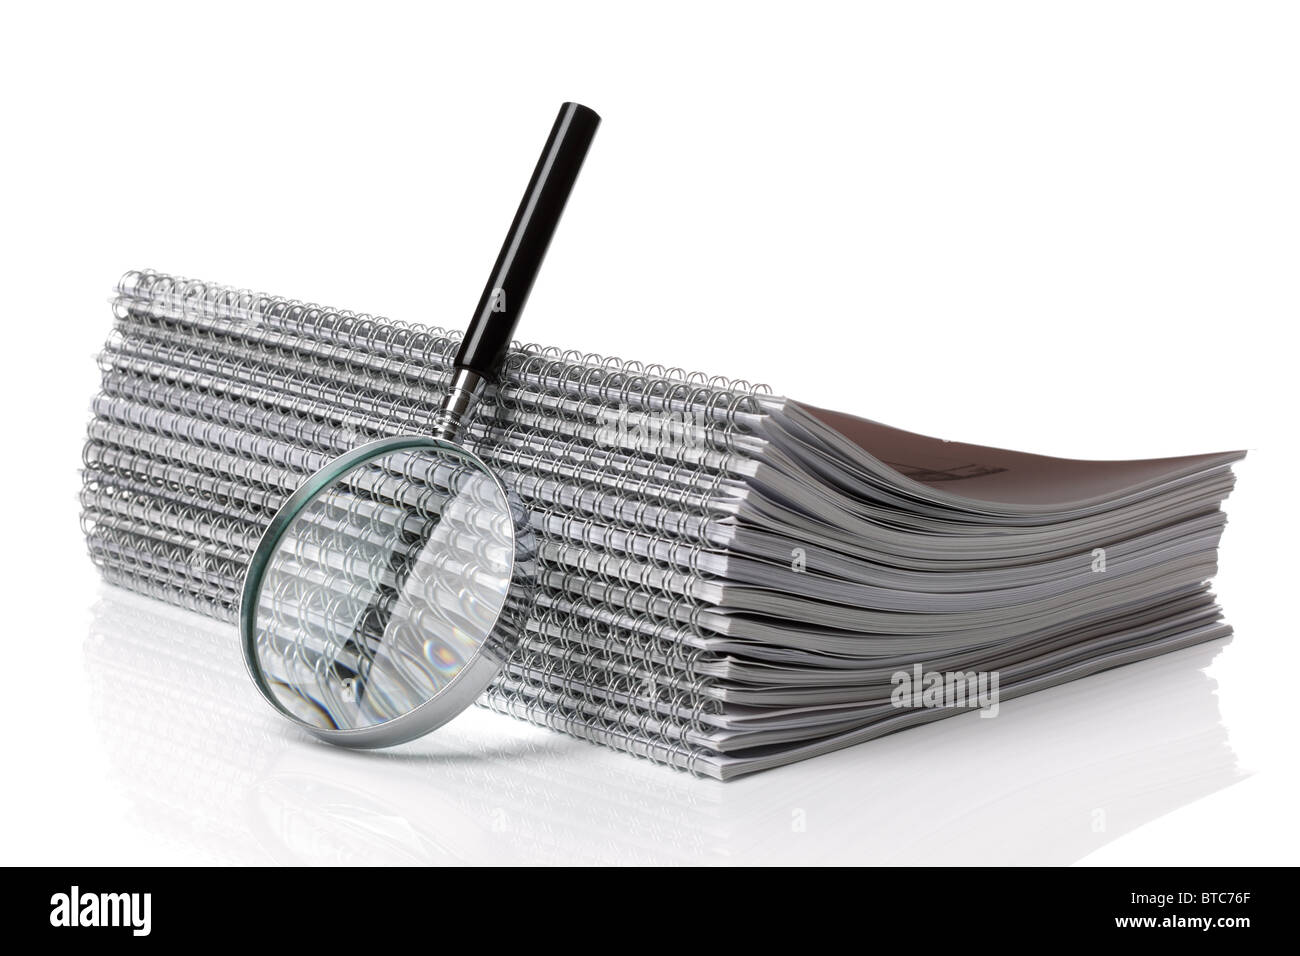 Searching ring binder document - Stock Image